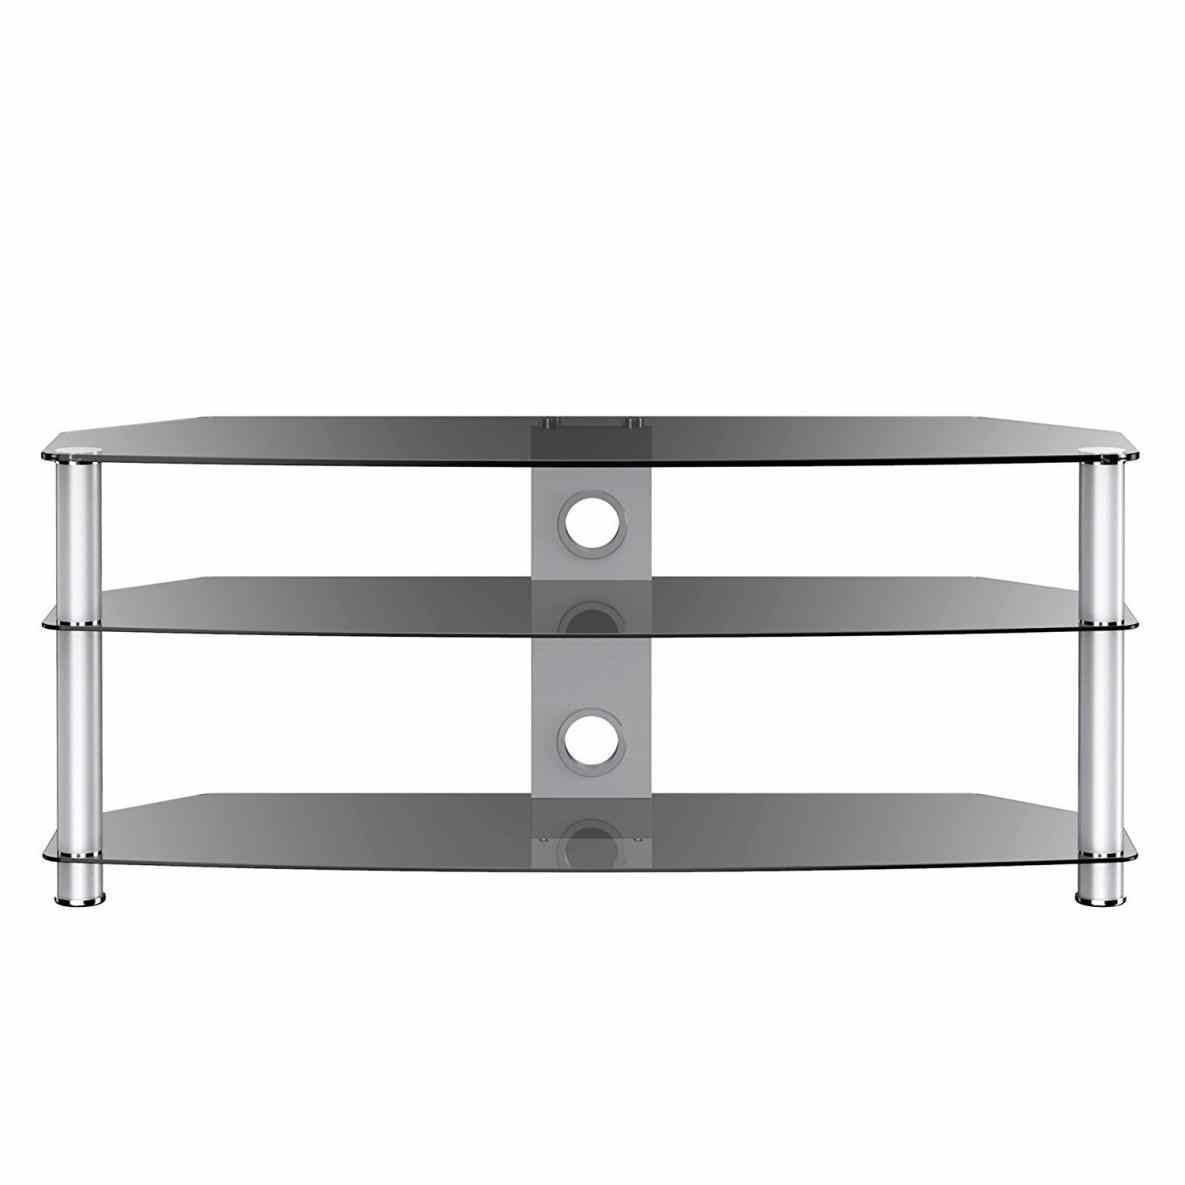 42 Lcd Tv Dimensions | Wnsdha with Stil Tv Stands (Image 1 of 15)